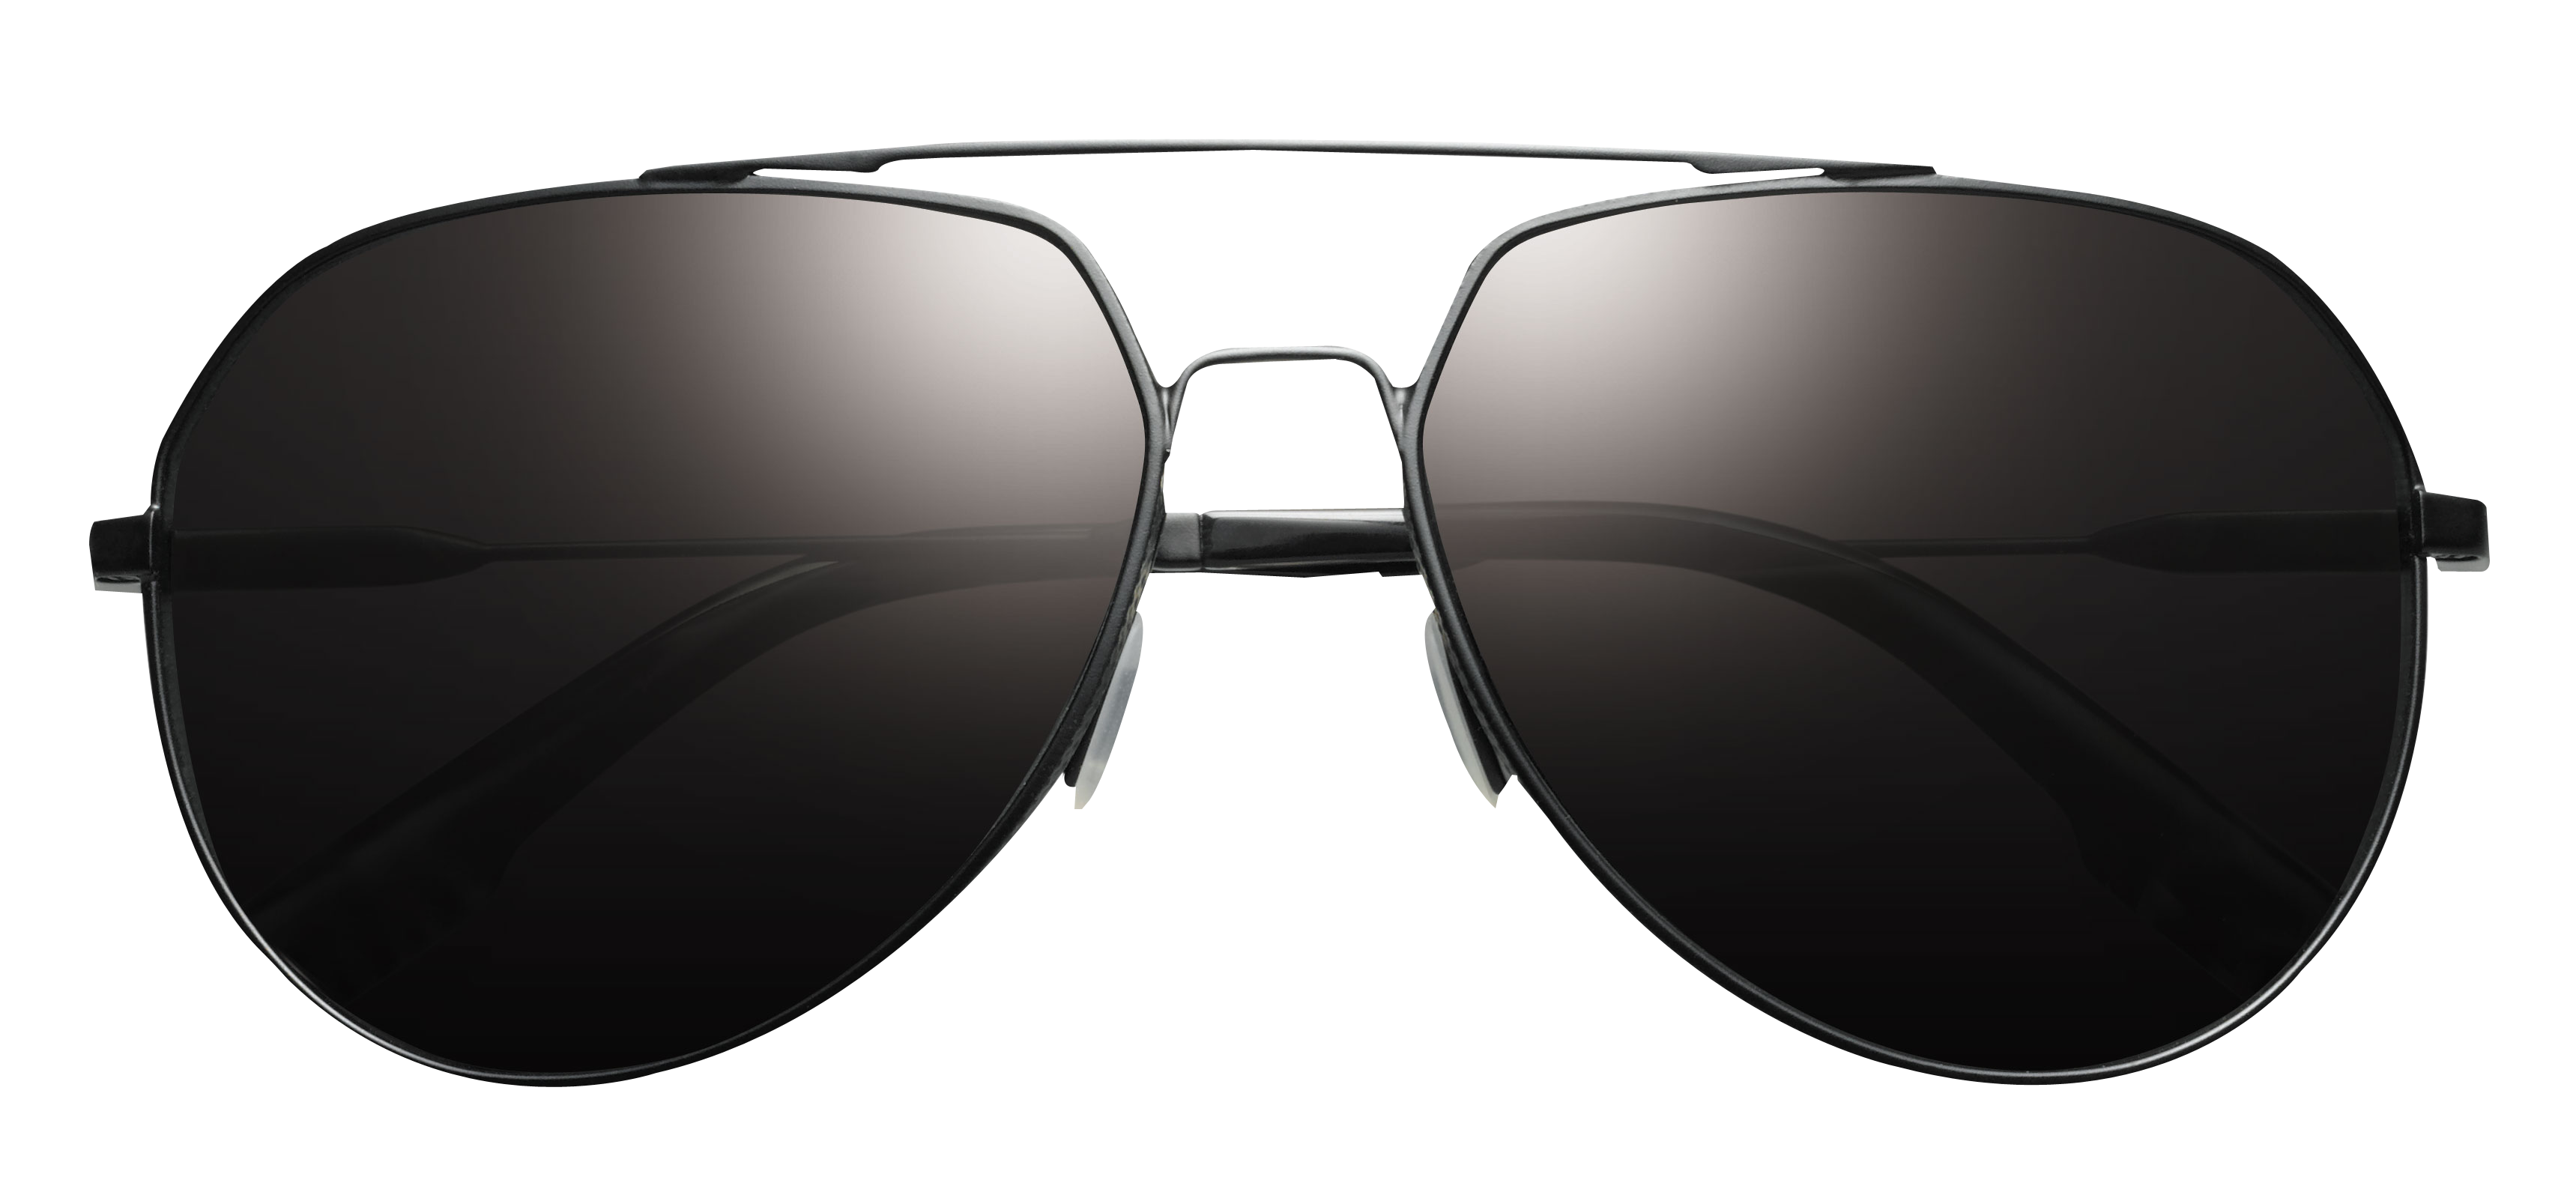 Cooling glass png. Sunglass transparent images pluspng